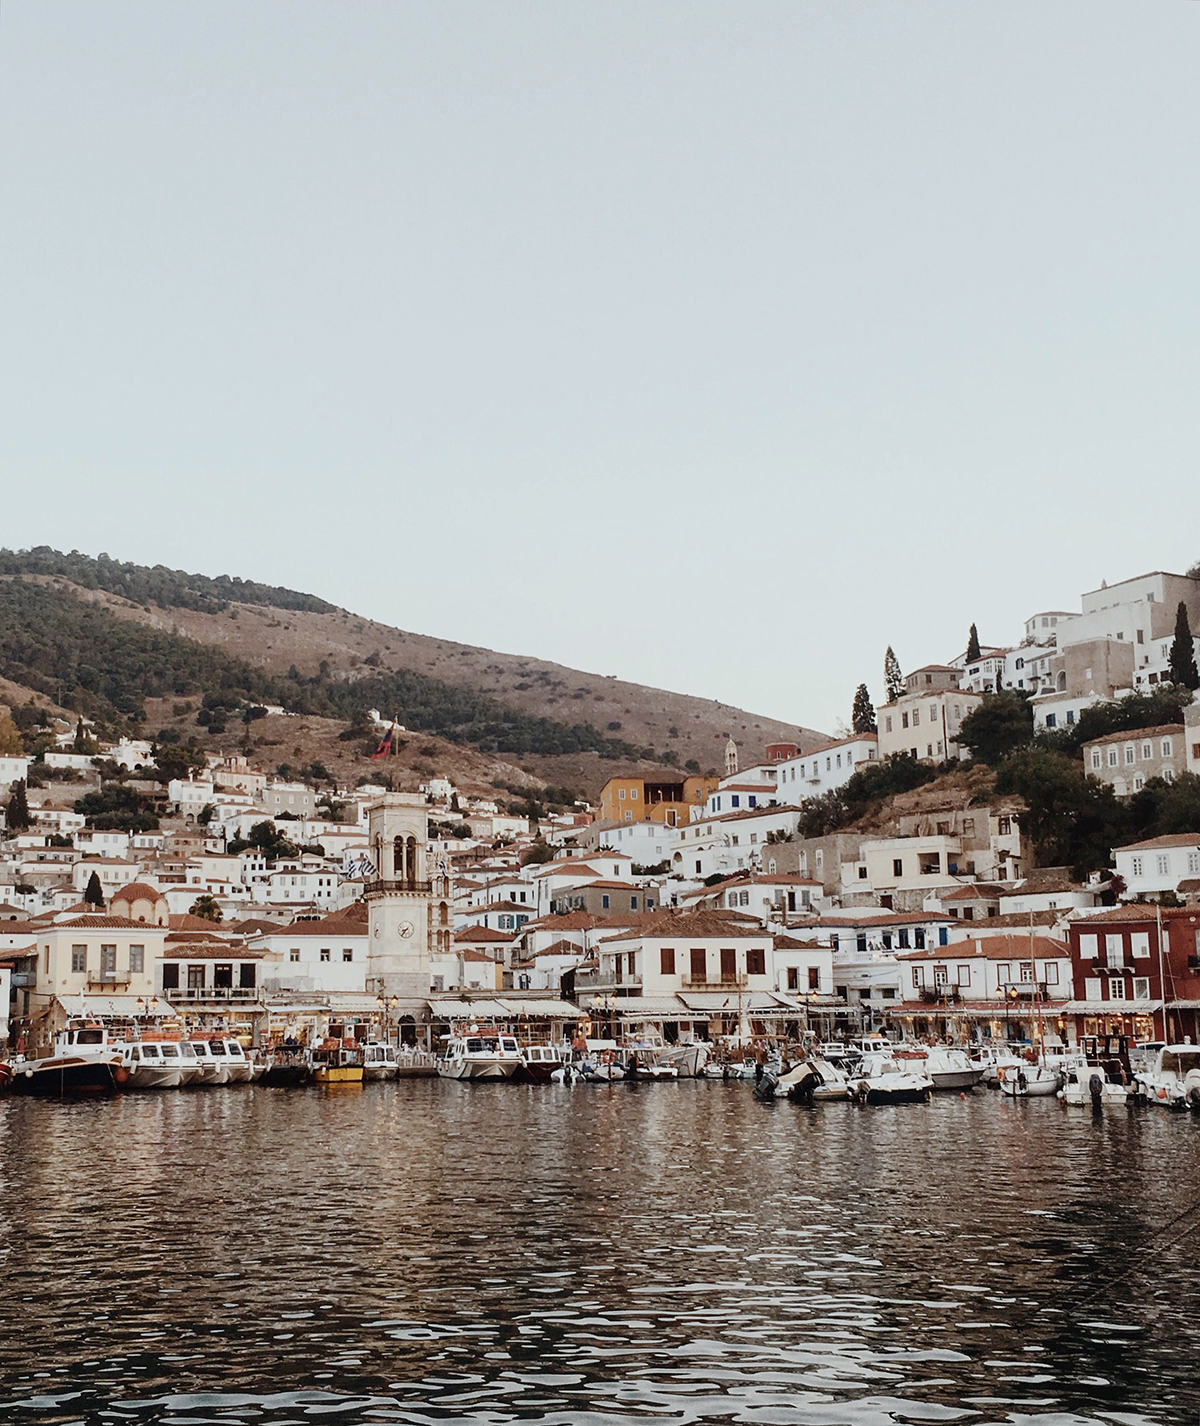 harbour of hydra, a greek island in the mediterranean sea. captured with my iPhone 6s, edited in vsco cam and instagram